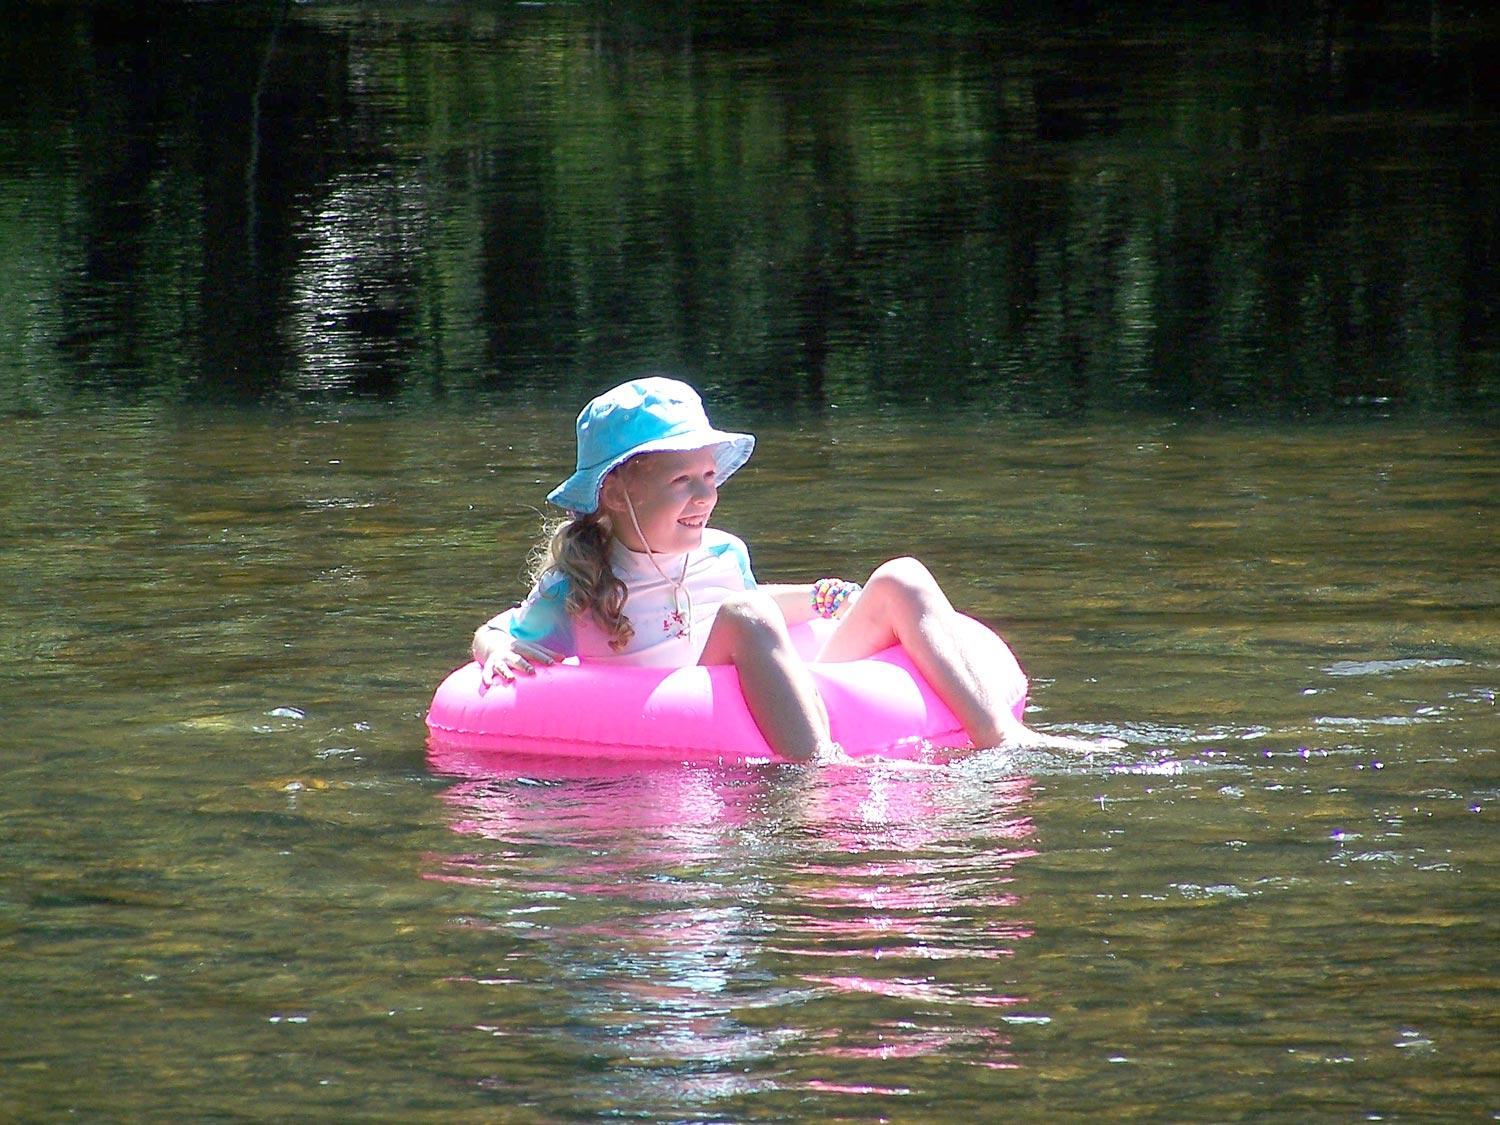 F. Lily  In this photograph the broken reflection of my daughter Lily and her pink float are shown in the river. It can be clearly seen how the reflection alternates between showing the pink float and the trees at the side of the river.